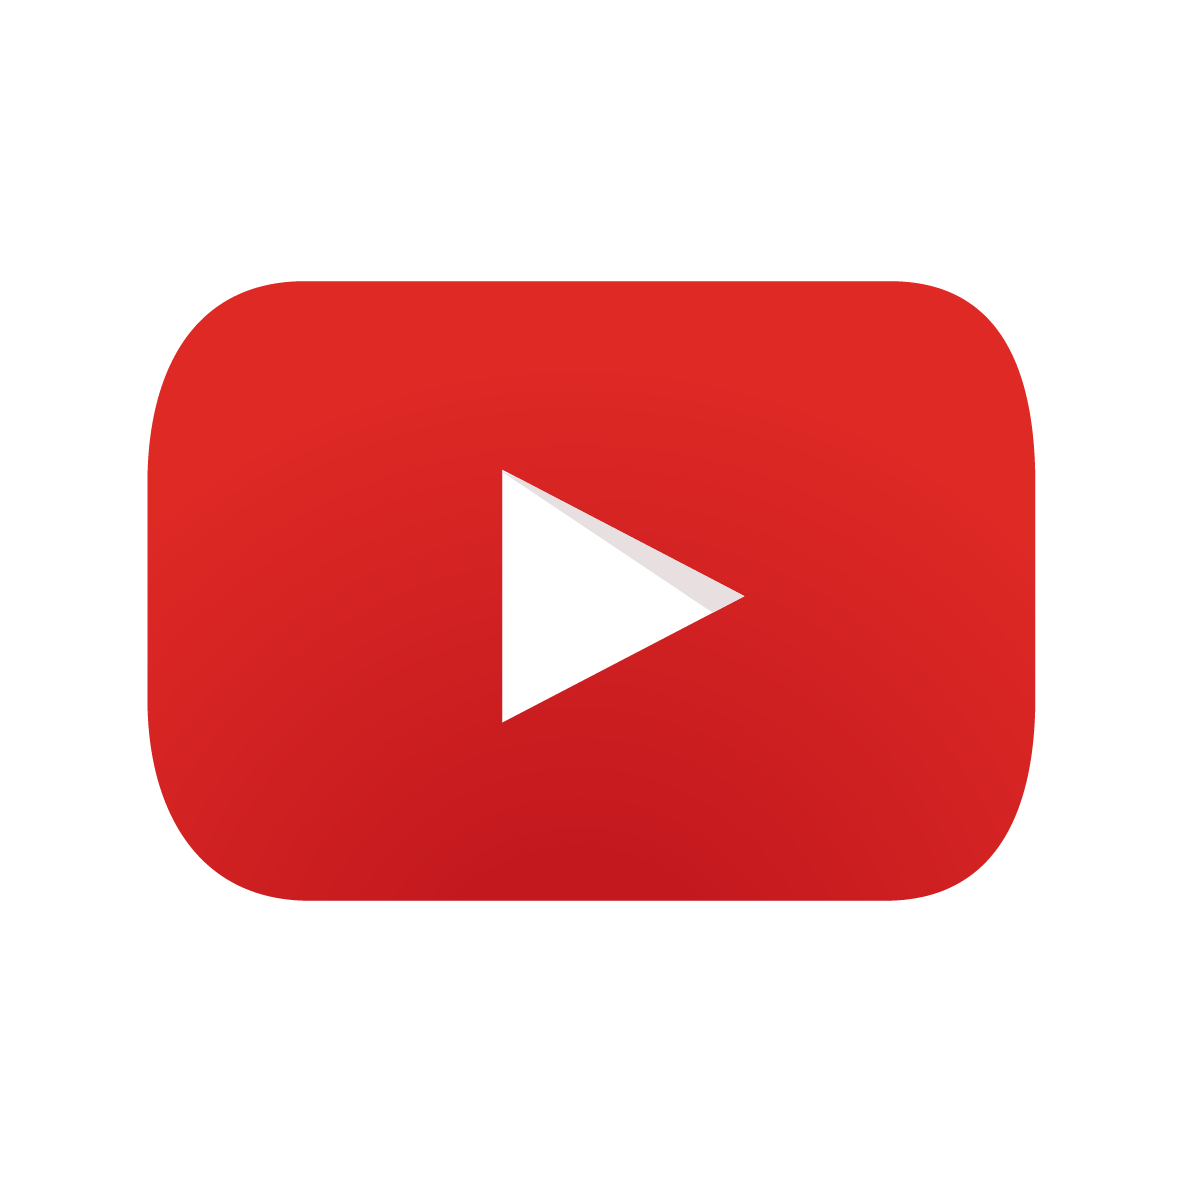 Download Logo Youtube HD Image Free PNG HQ PNG Image.